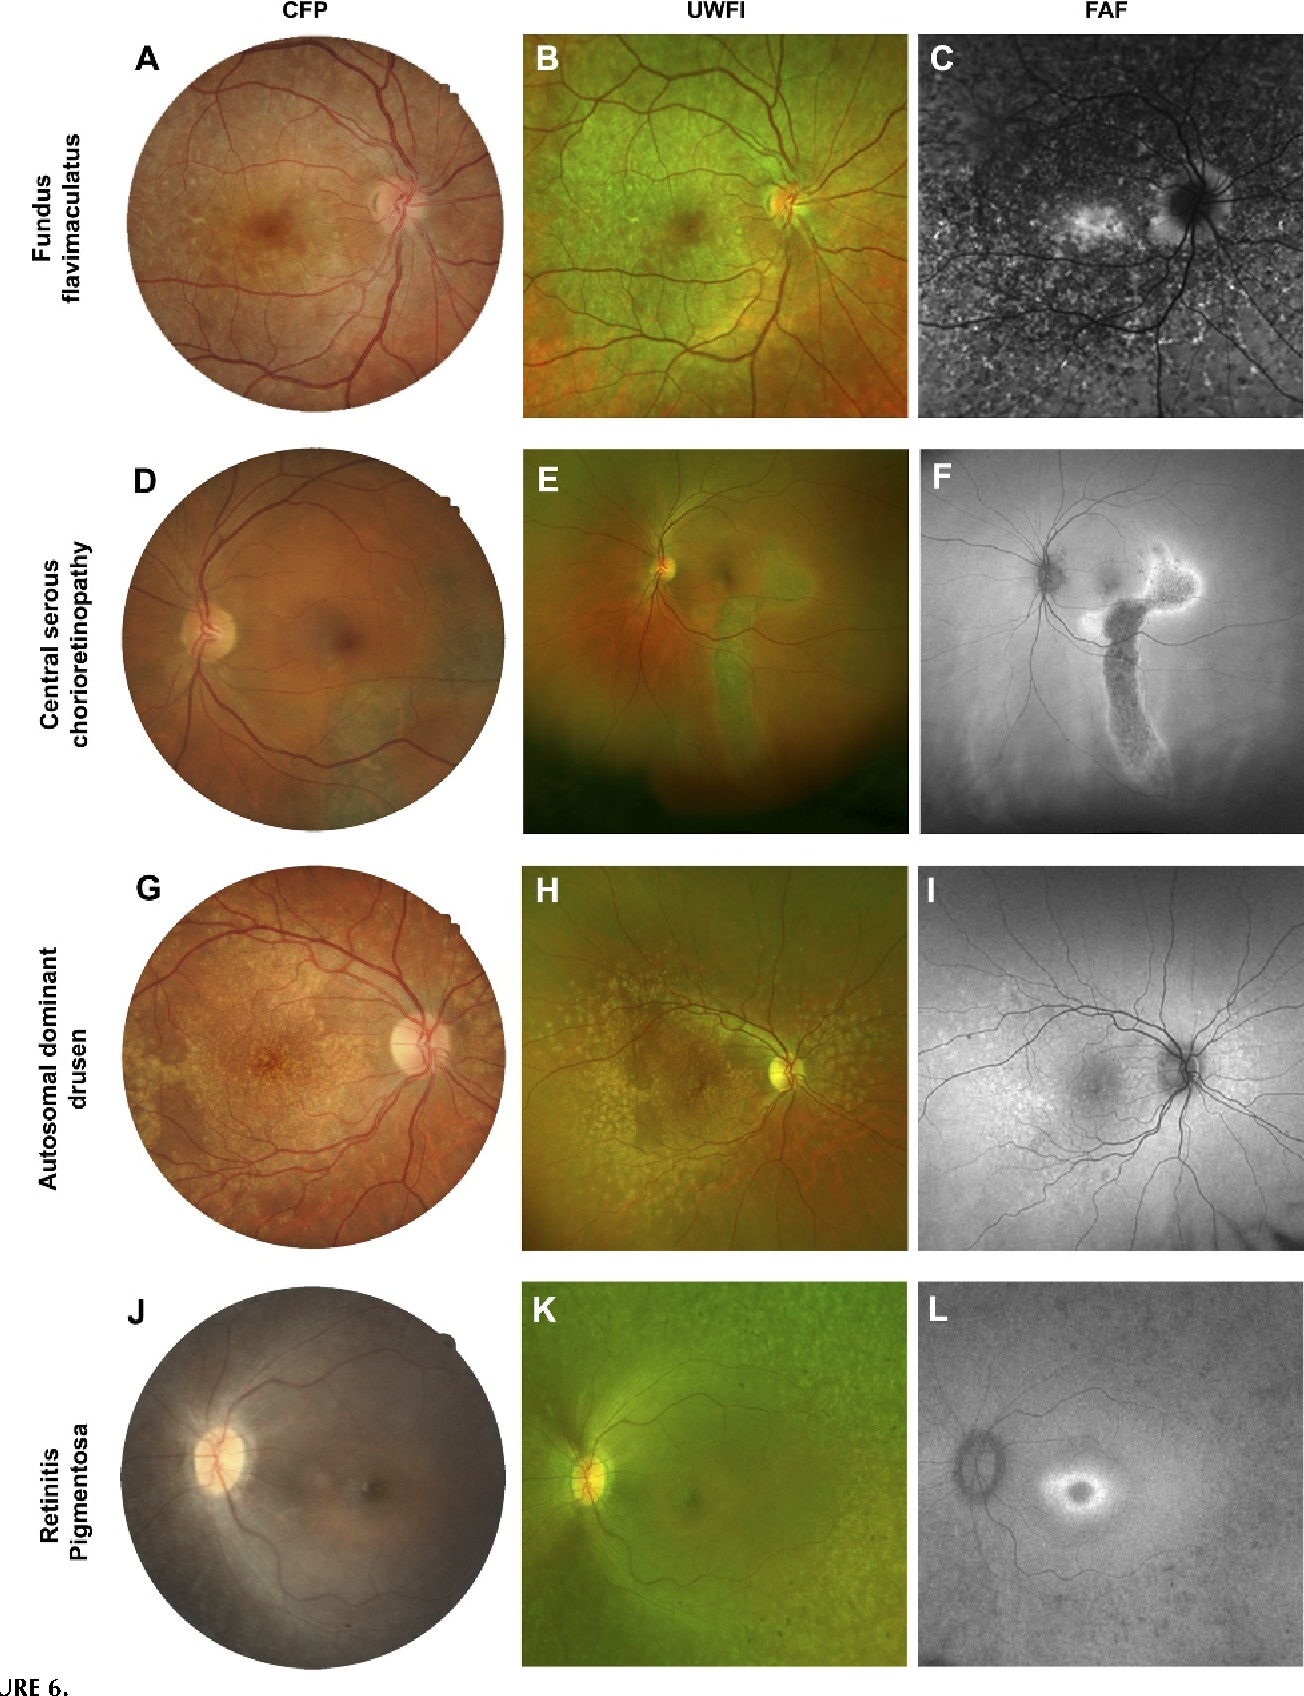 PDF] Fundus Autofluorescence in Age-related Macular